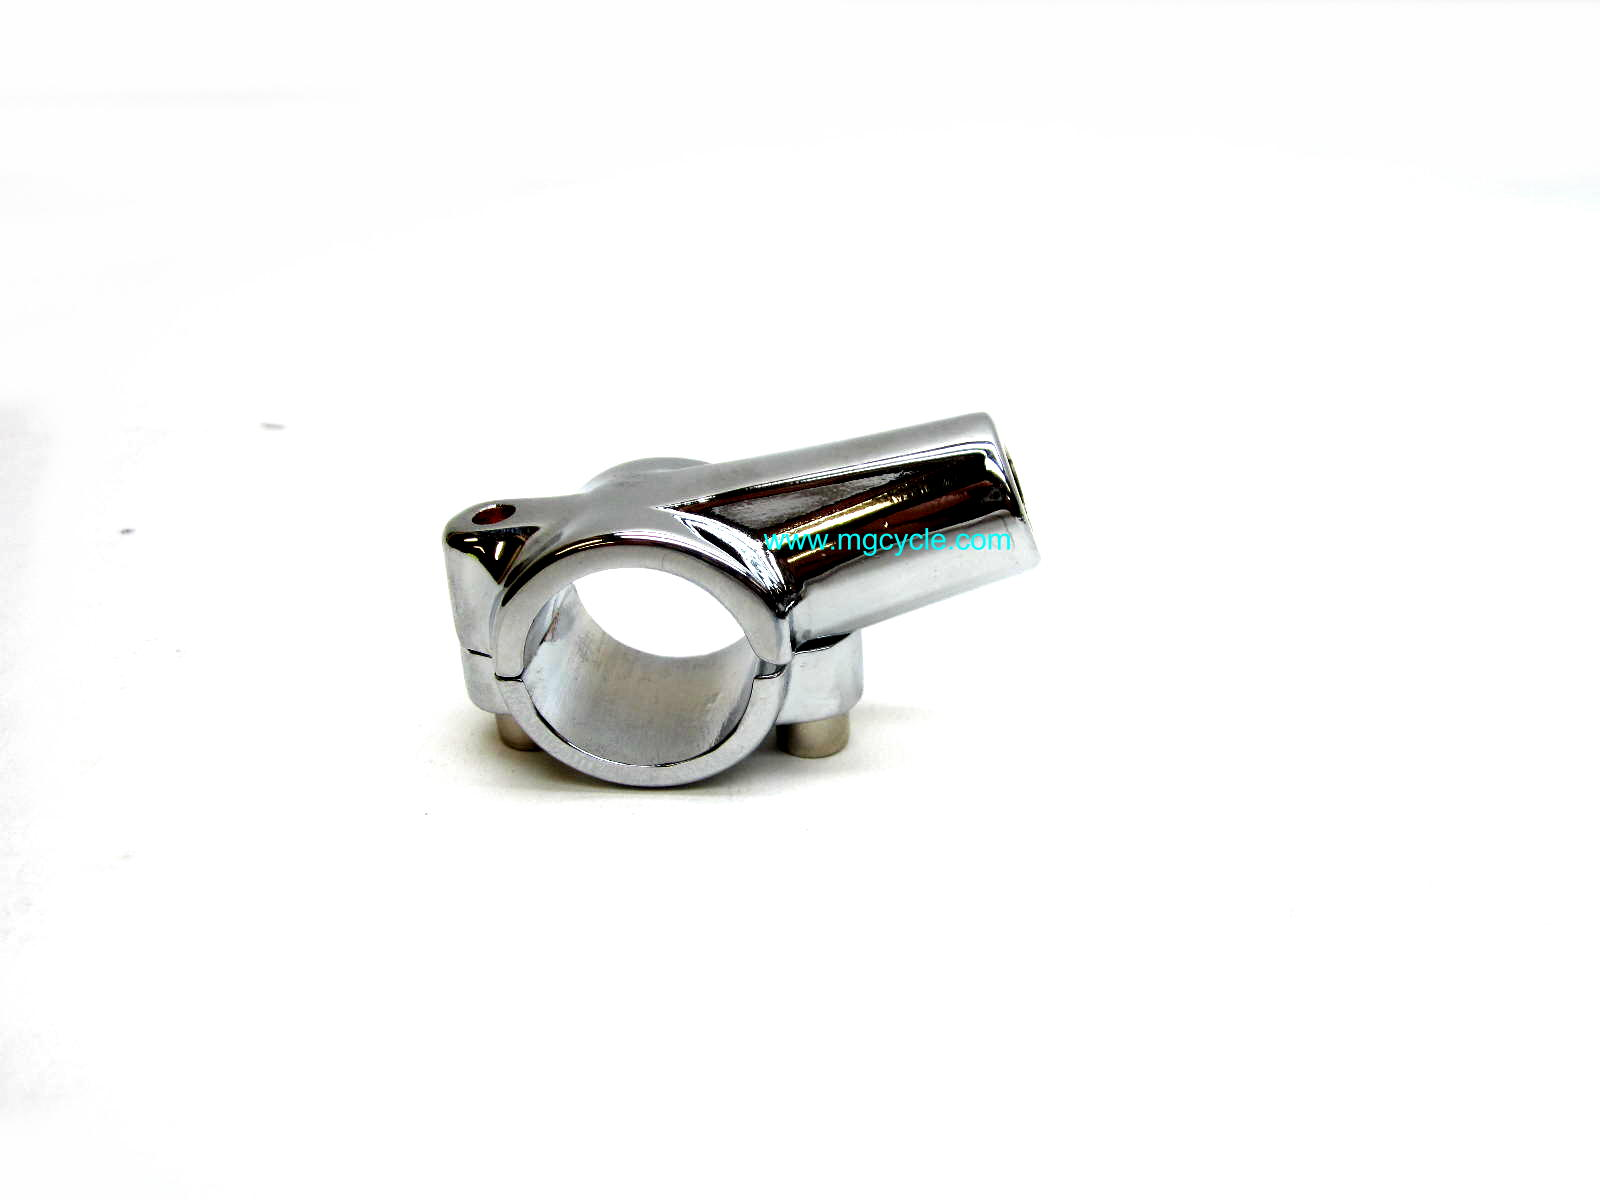 mirror mount for 10mm mirror, handlebar clamp, chrome